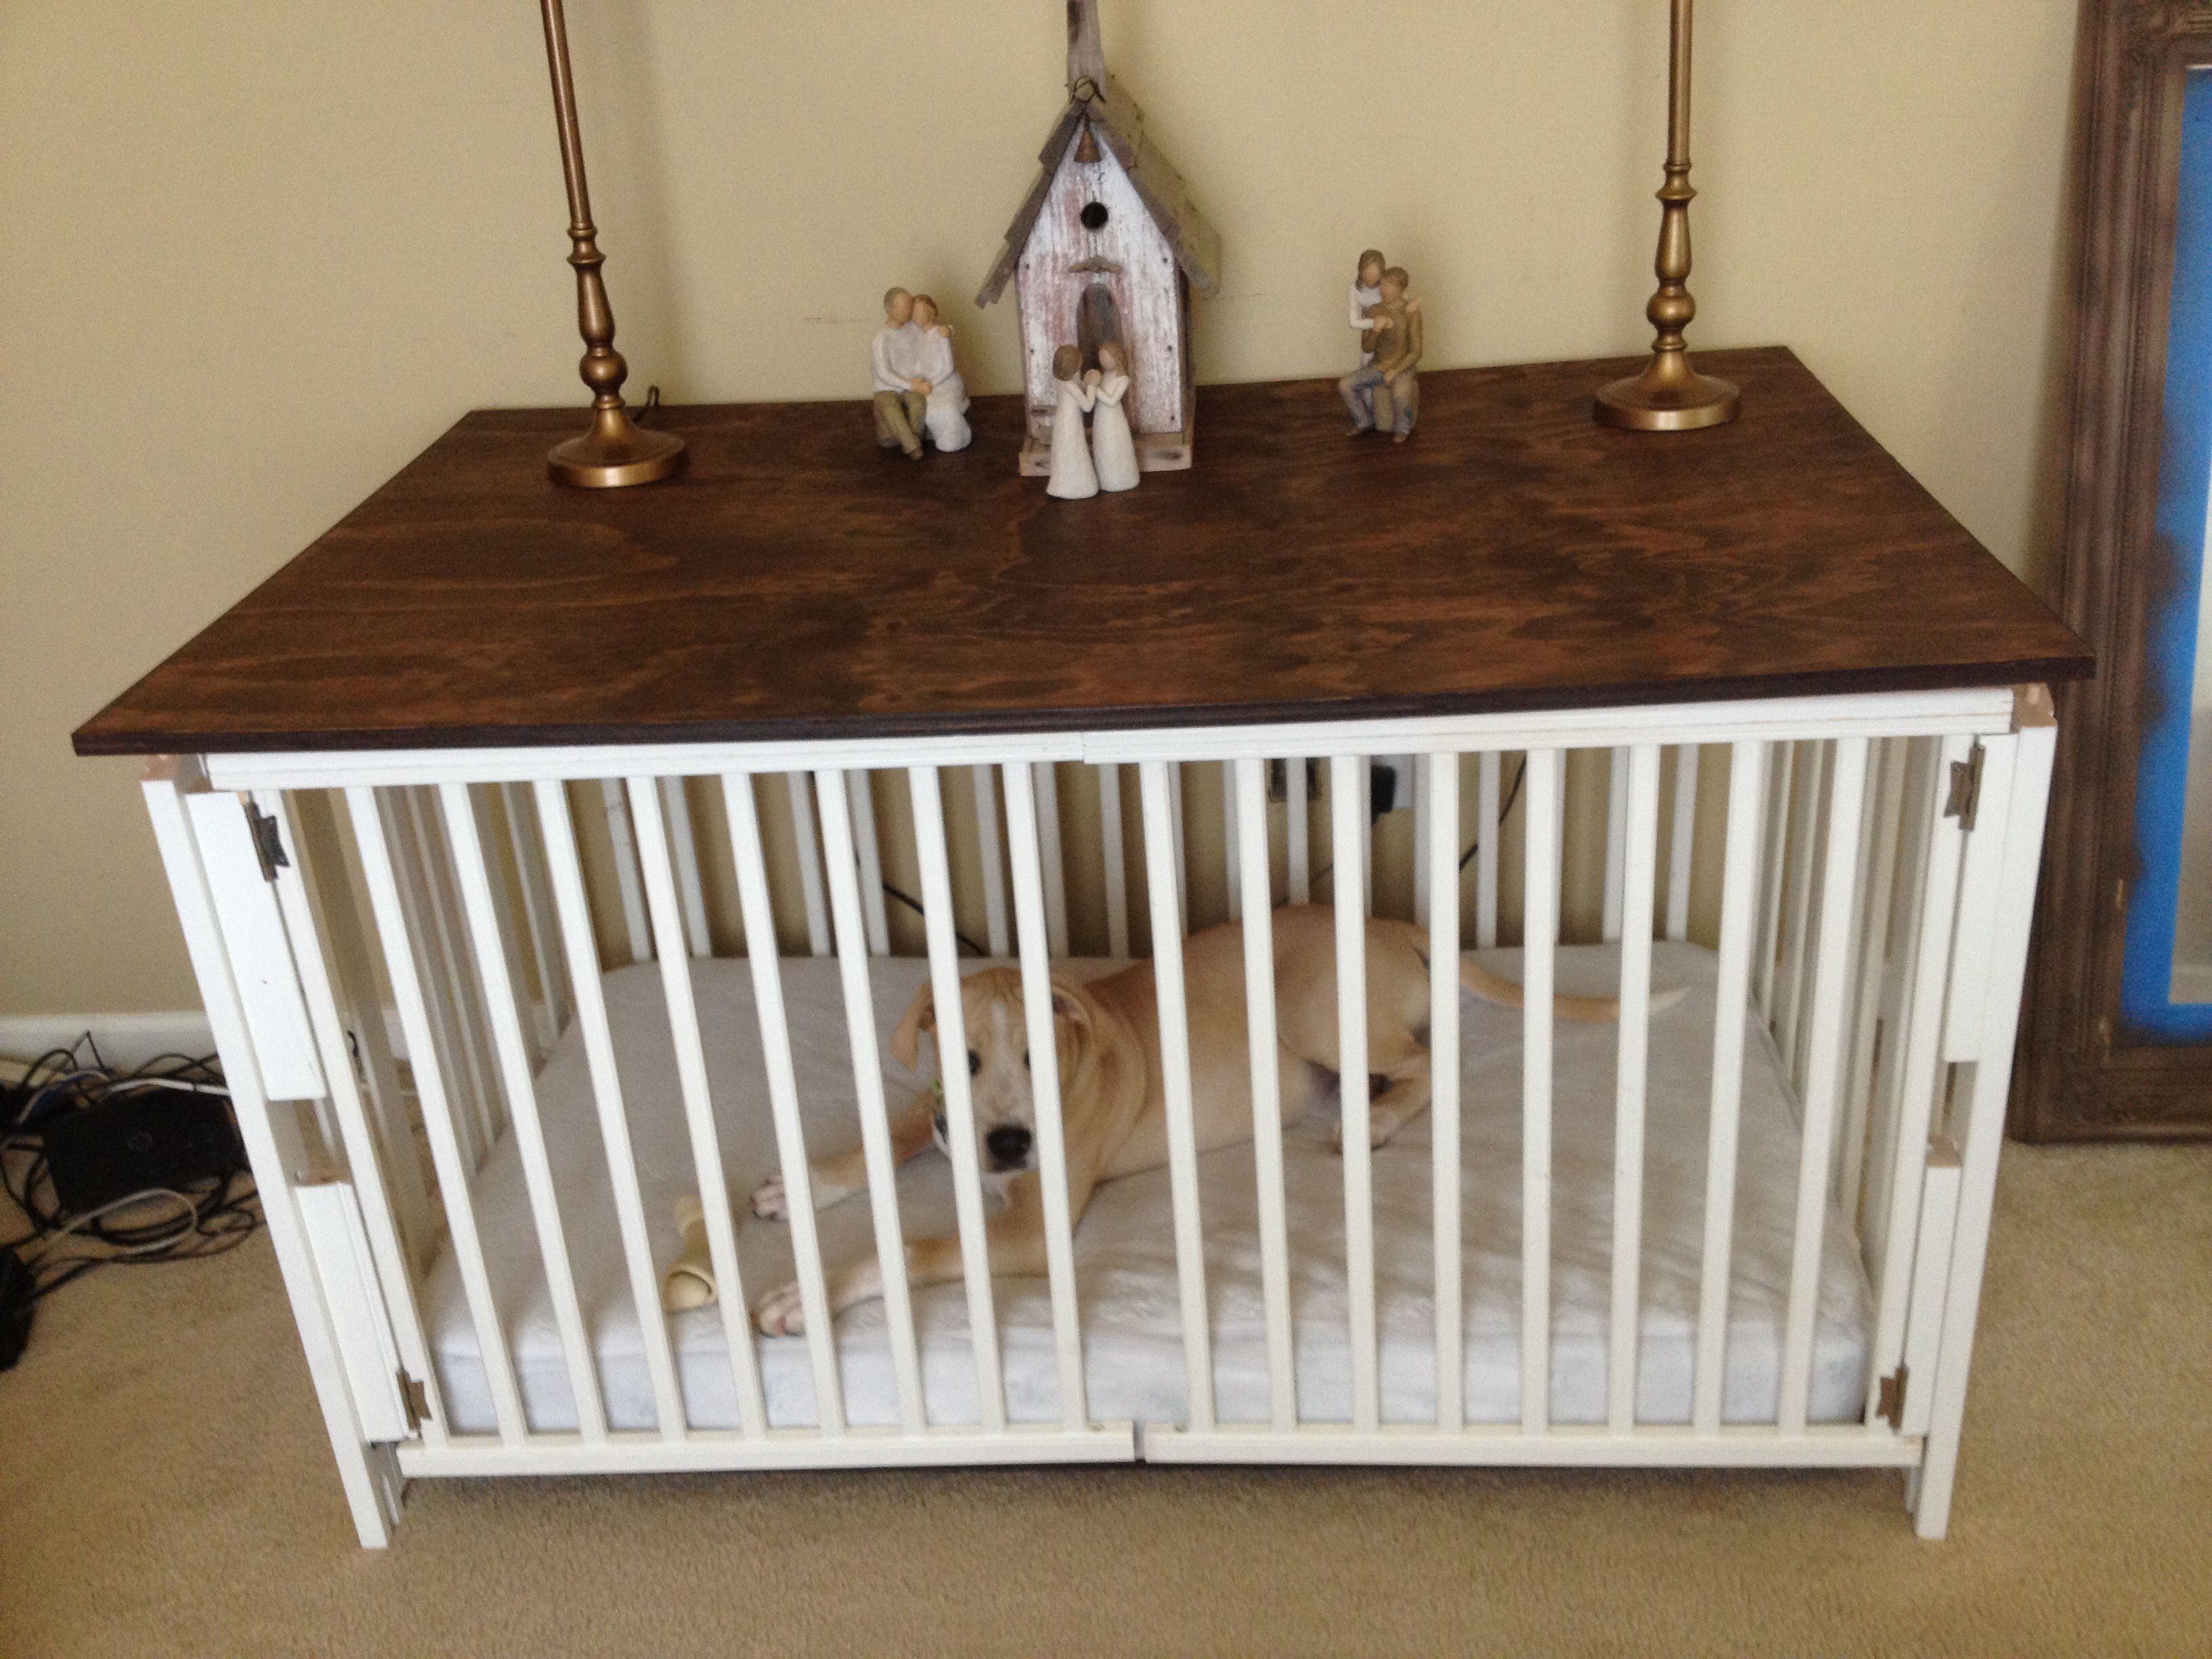 Remodel That Old Baby Crib For Your Home Décor 1